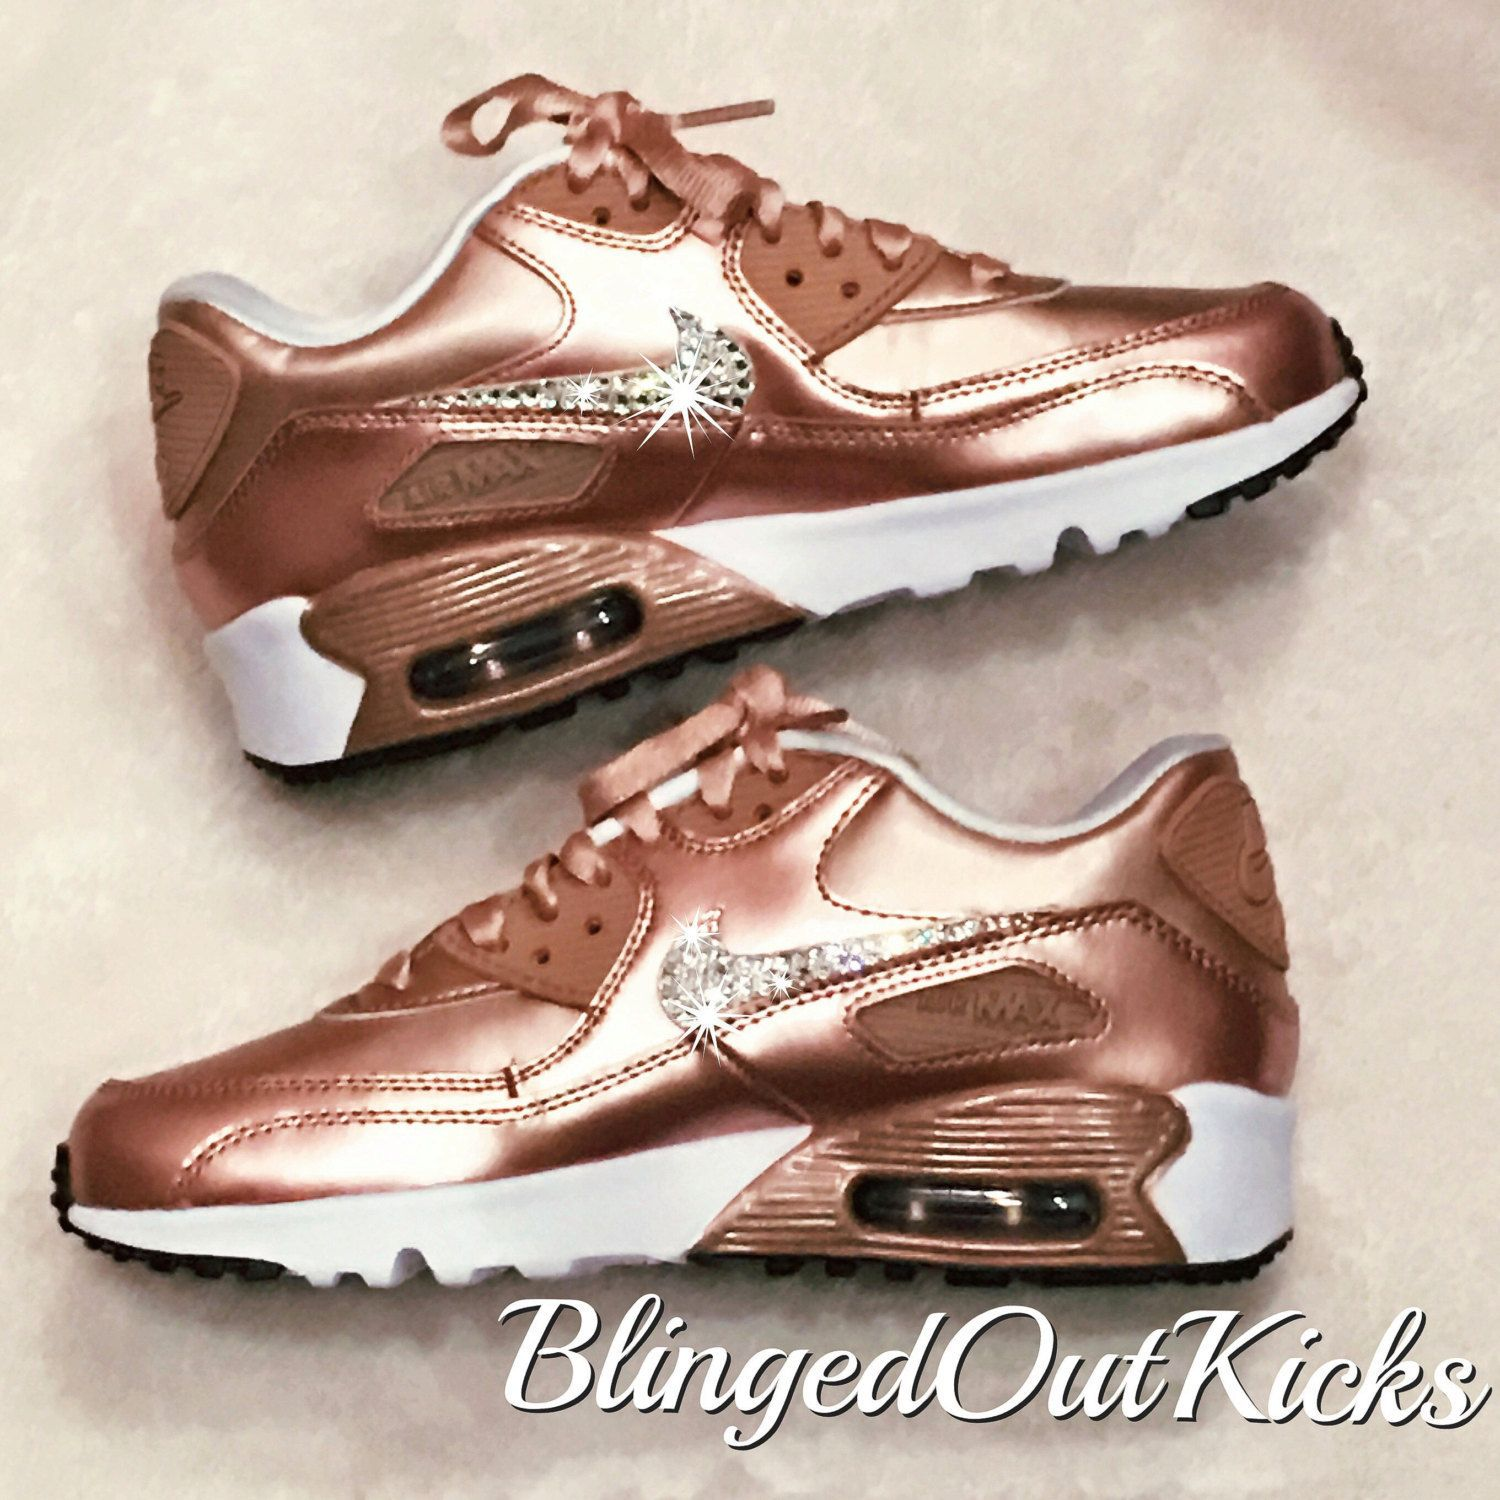 nike air max rose gold swarovski